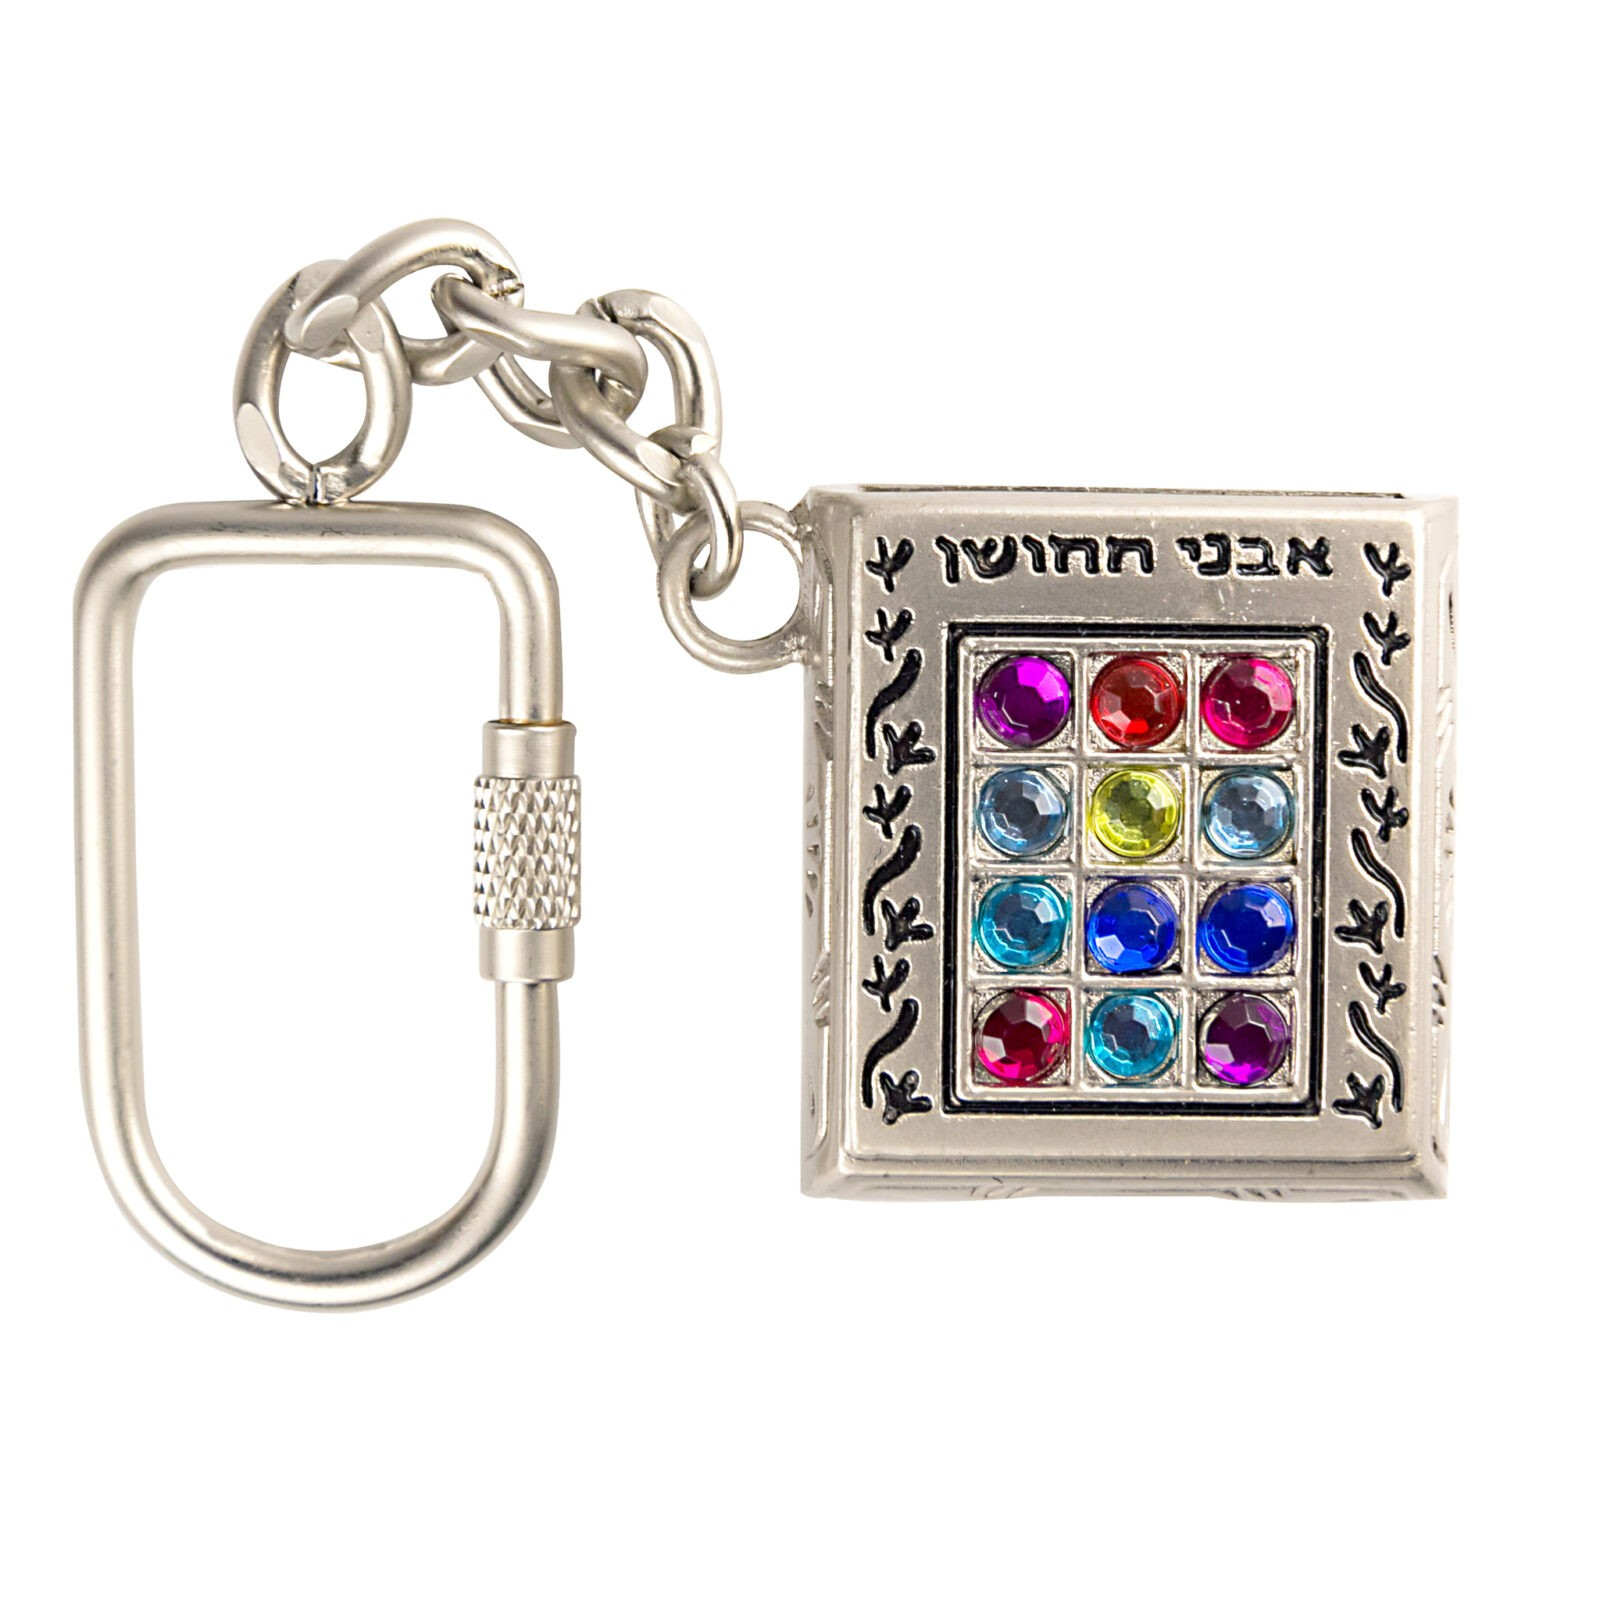 12 Tribes Of Israel Breastplate Key Chain With Mini New